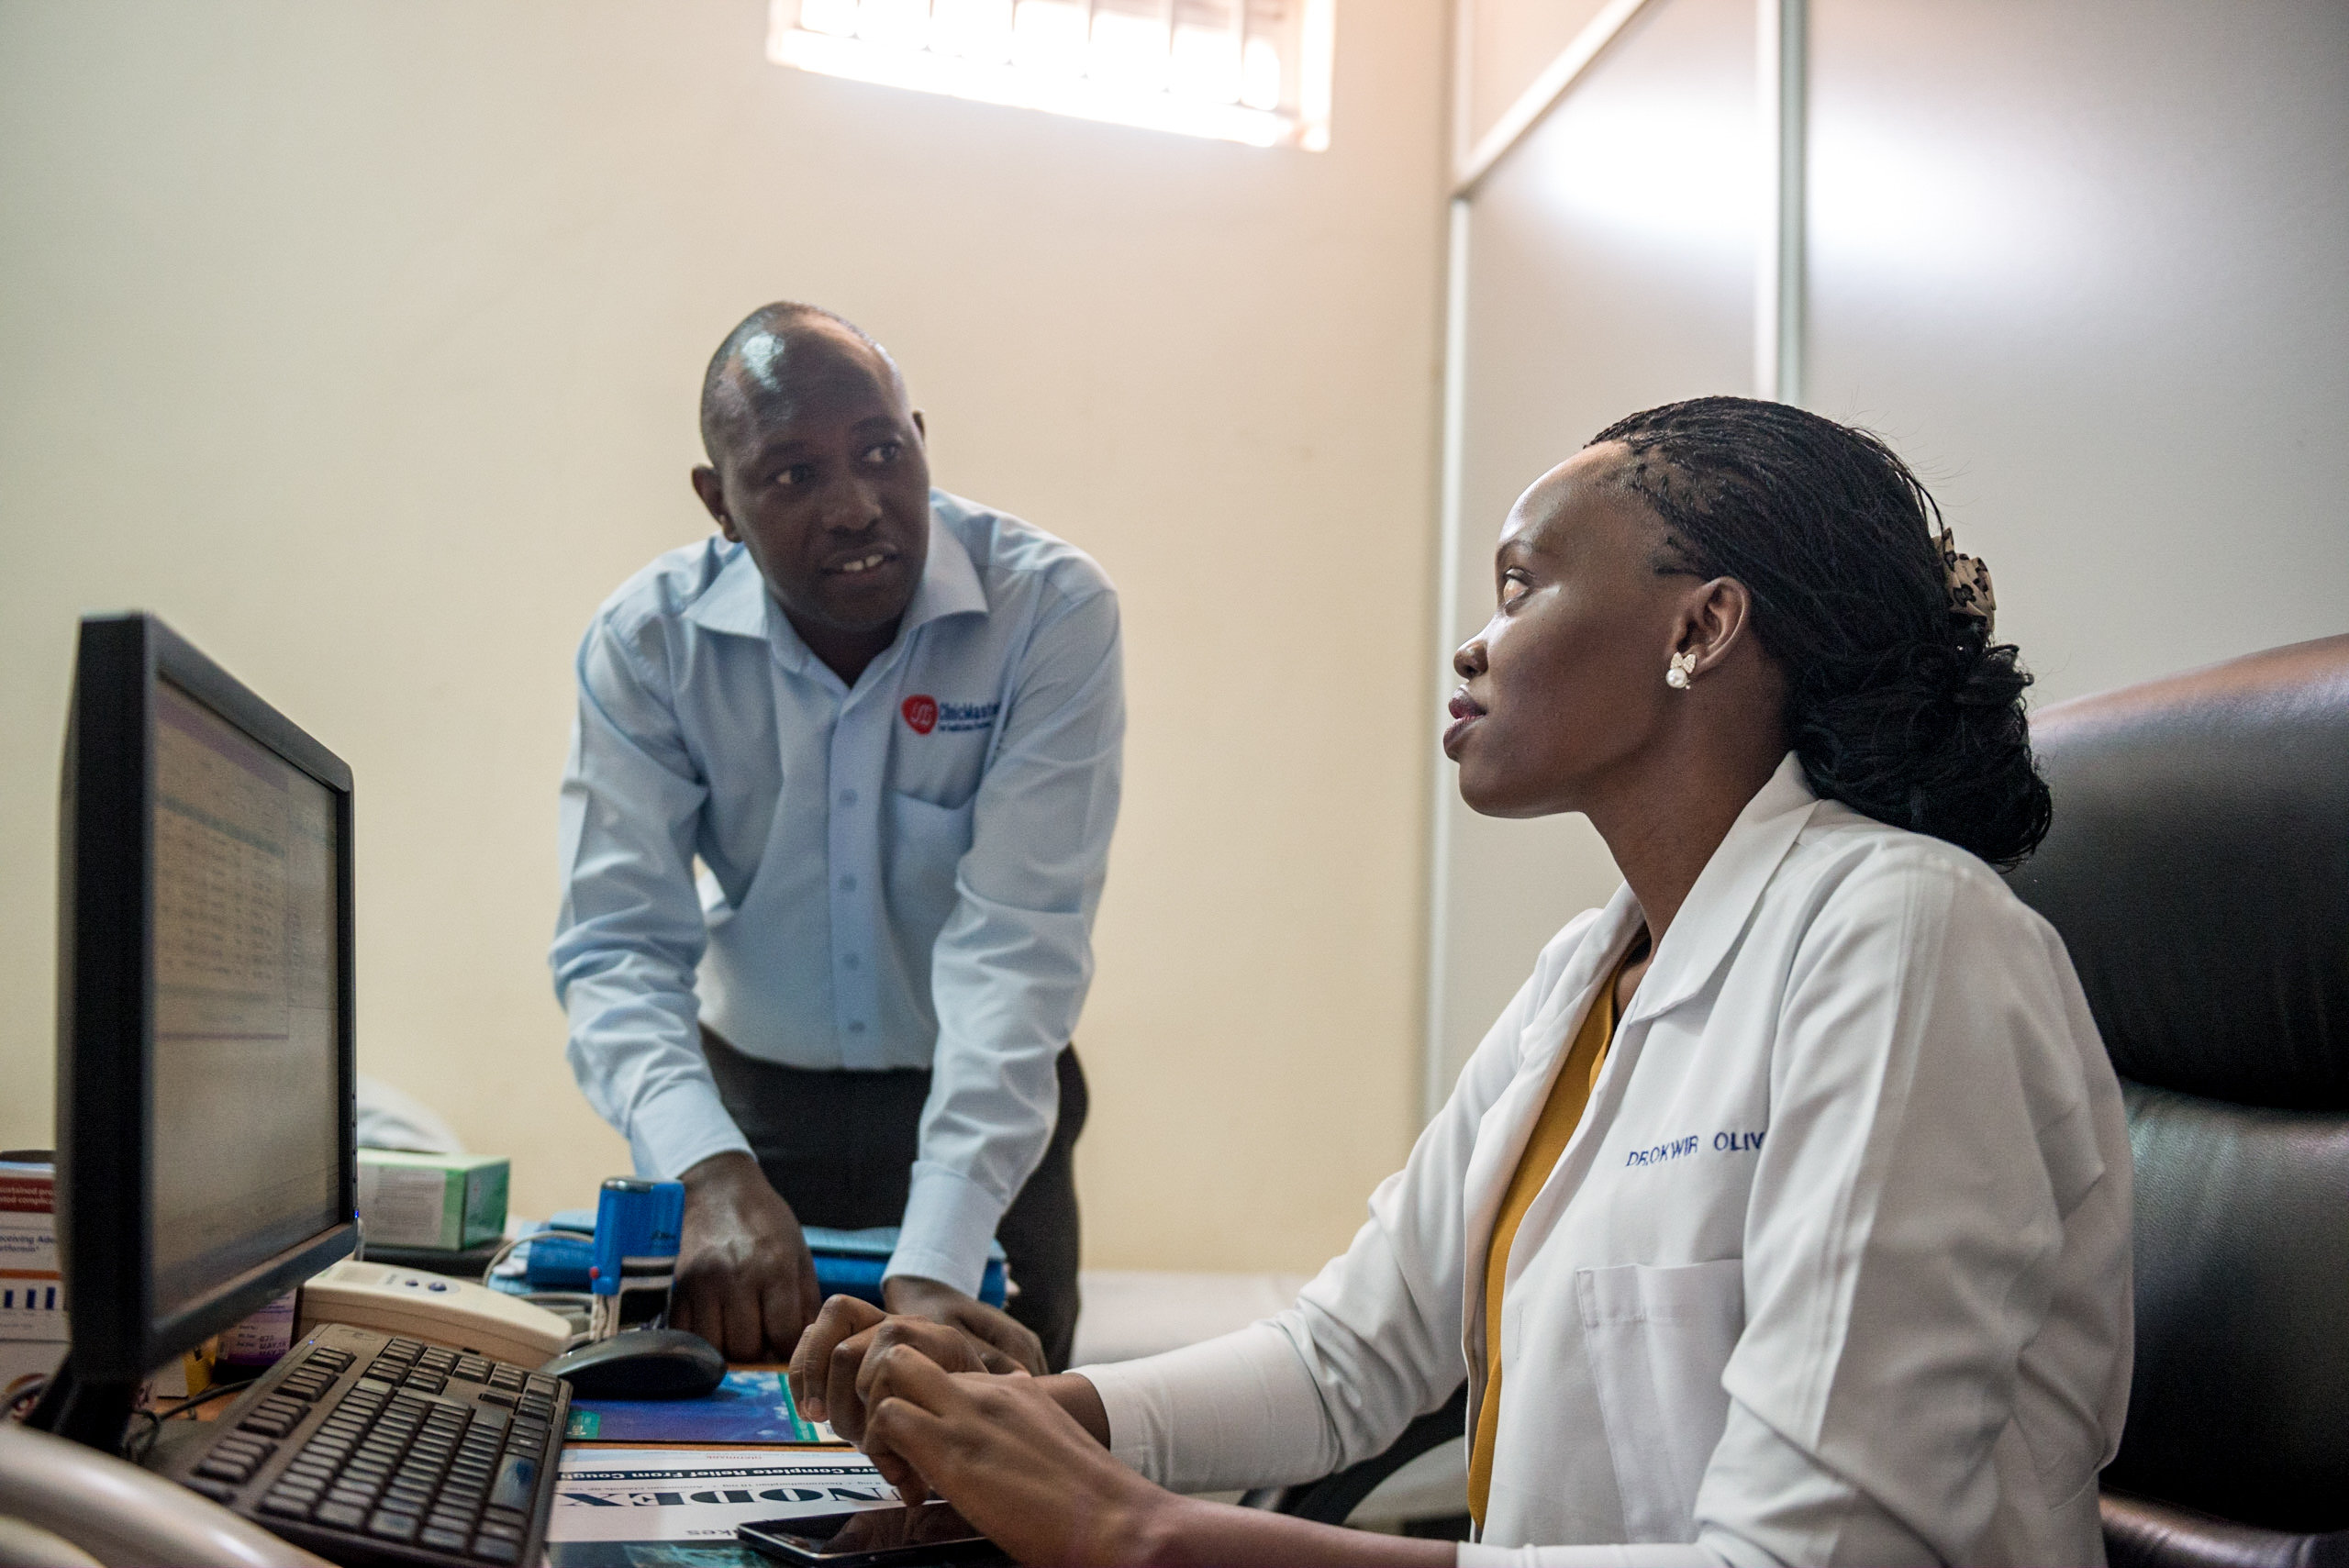 ClinicMaster in Uganda develops and sells an IT solution for hospitals.